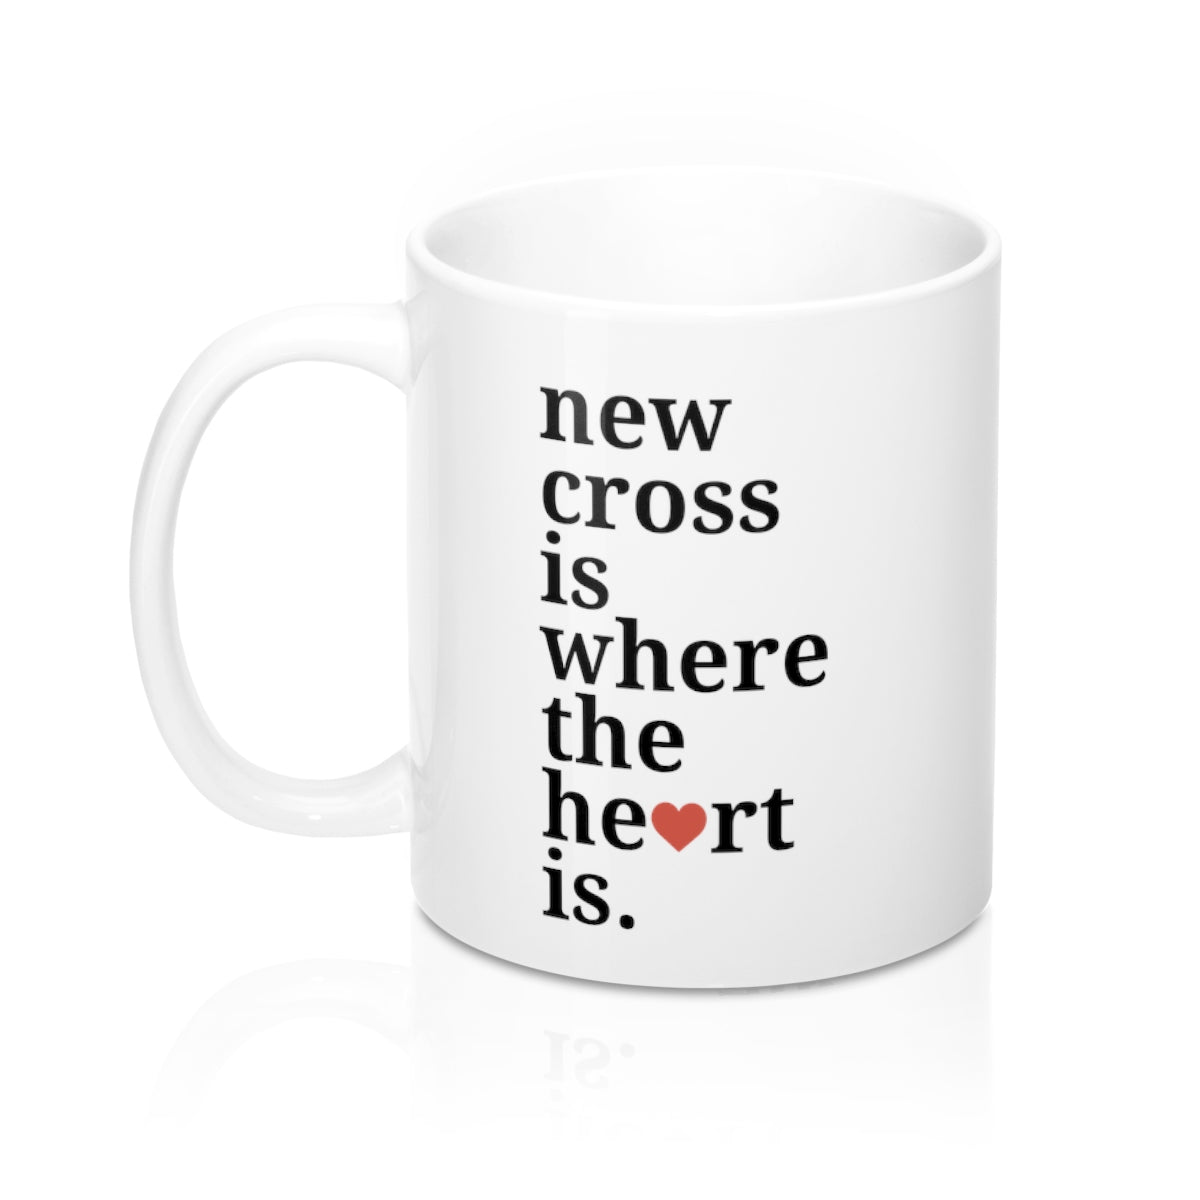 New Cross is Where The Heart Is Mug